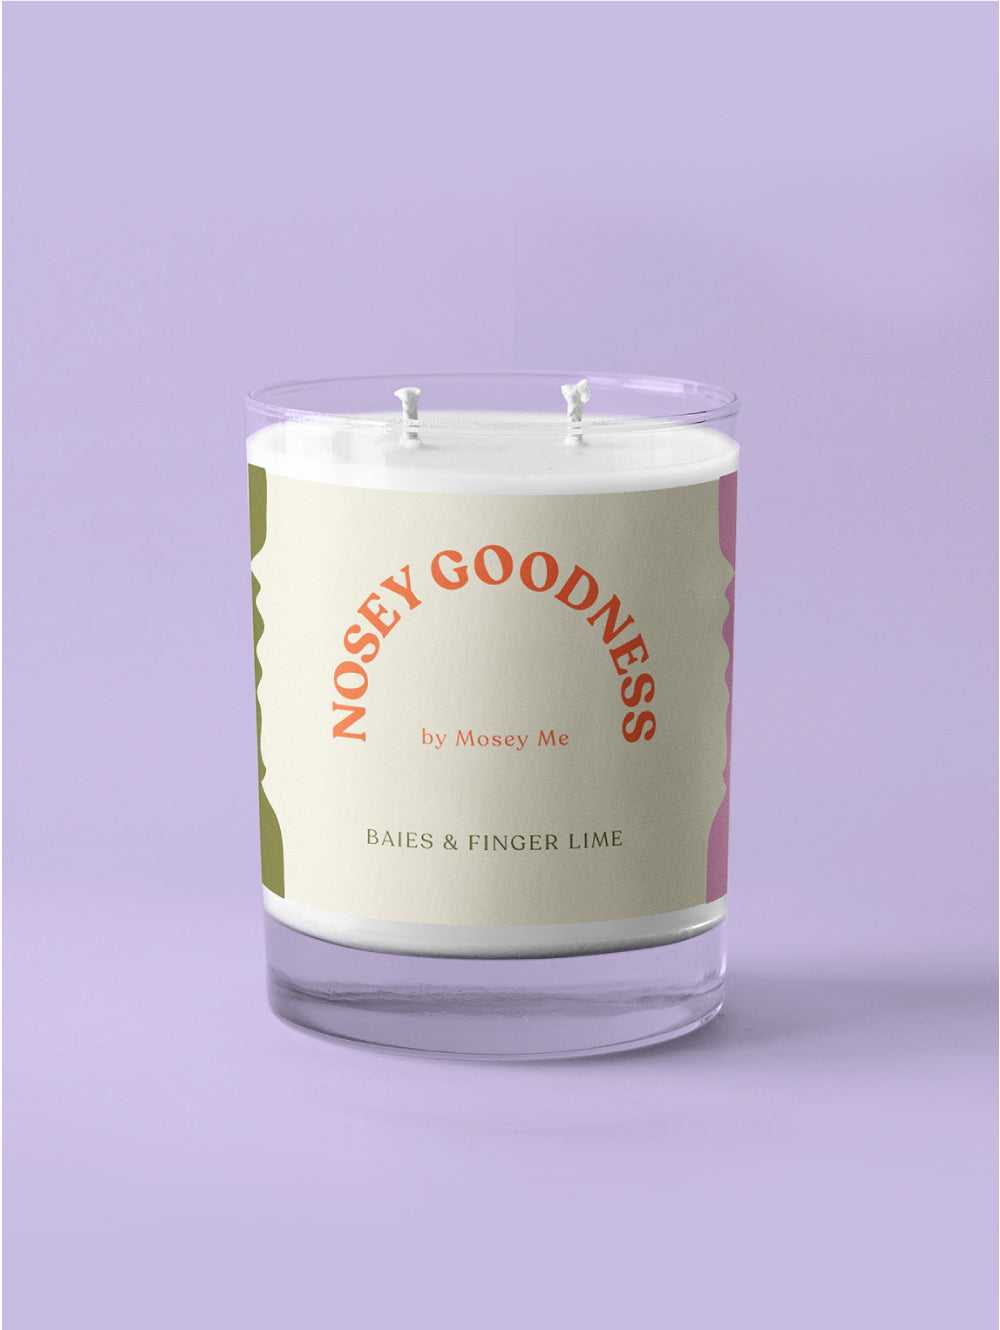 Nosey Goodness Candle  by Mosey Me